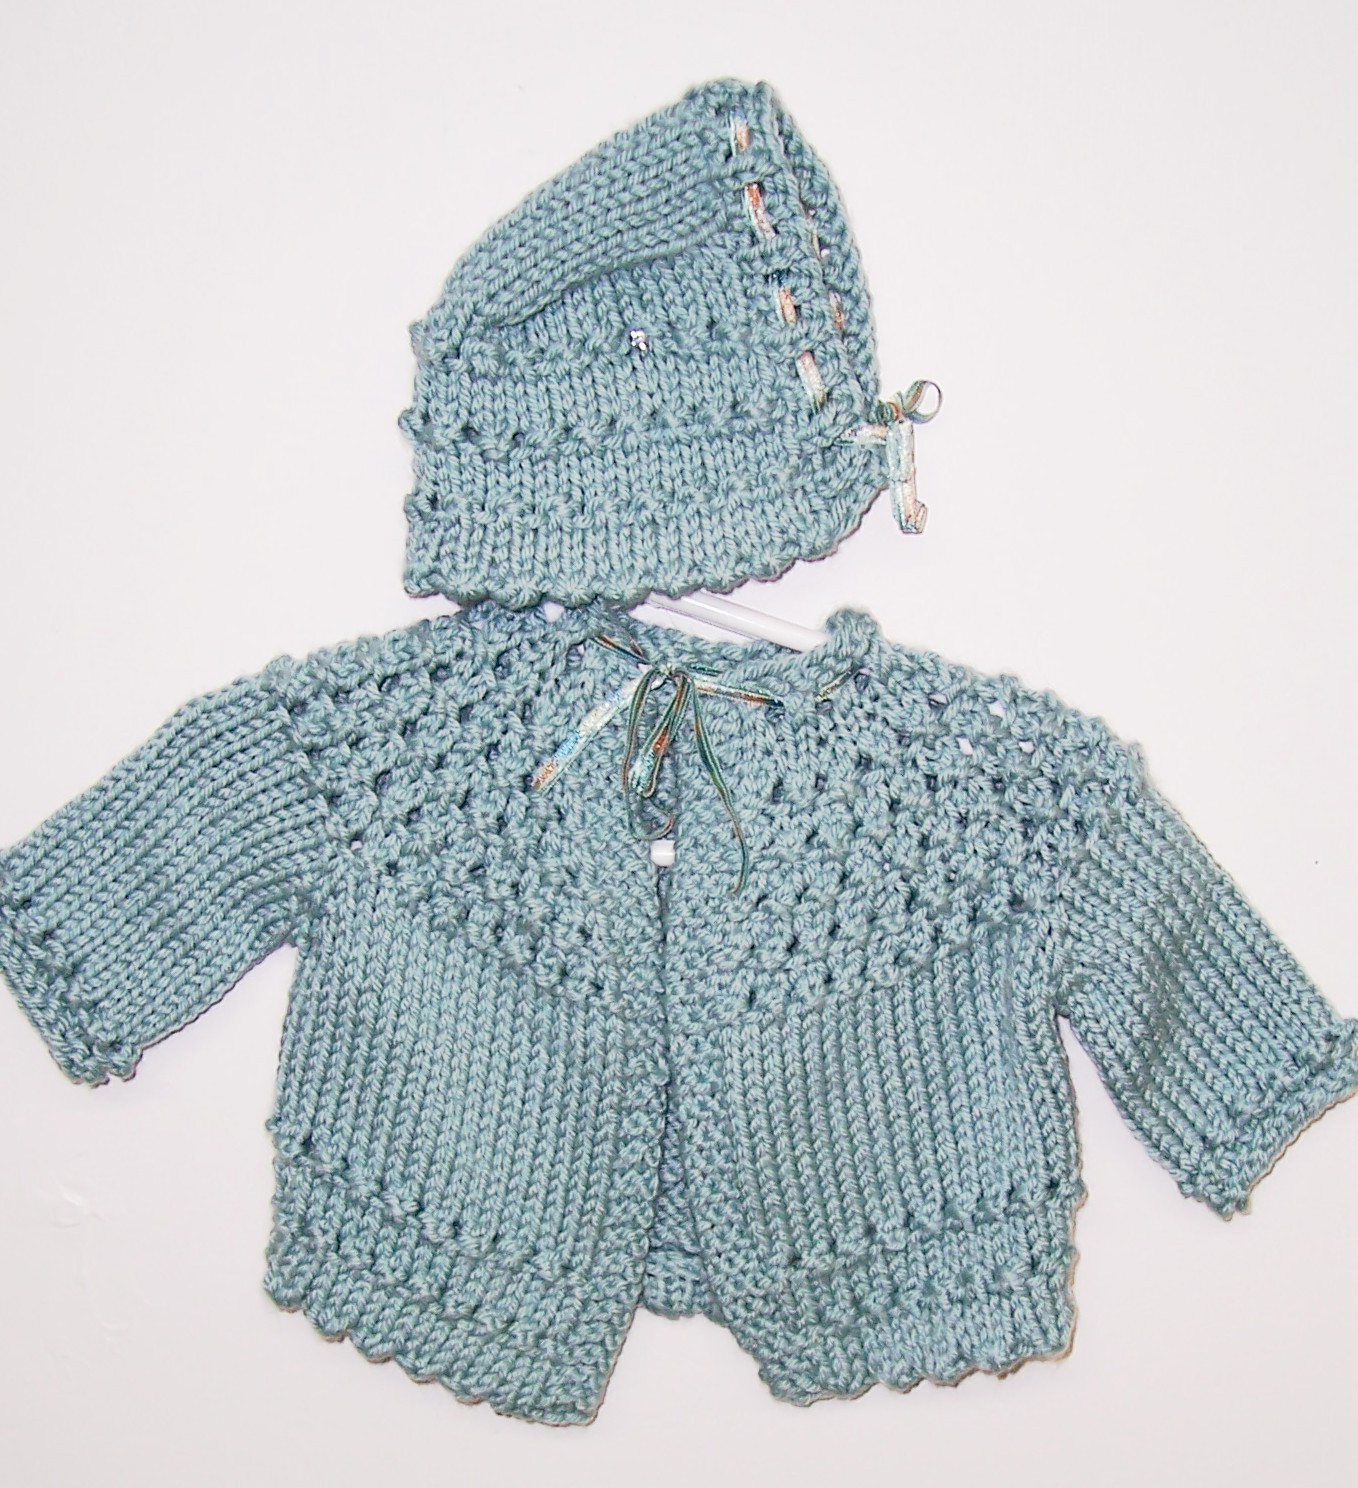 Free Baby Sweater Patterns Lovely Crochet Baby Hooded Sweater Free Patterns – Crochet Patterns Of New 42 Pics Free Baby Sweater Patterns